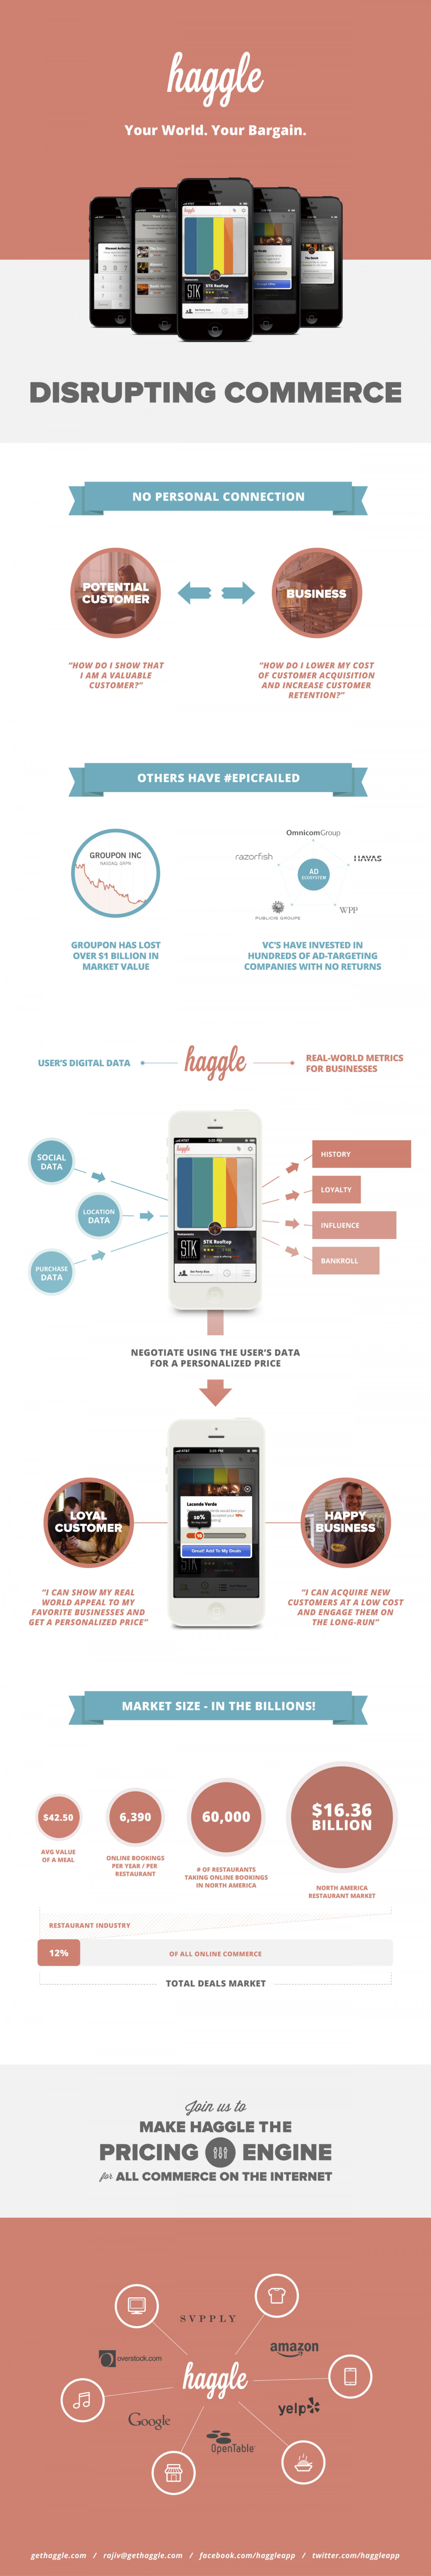 Haggle Pitch Infographic Infographic